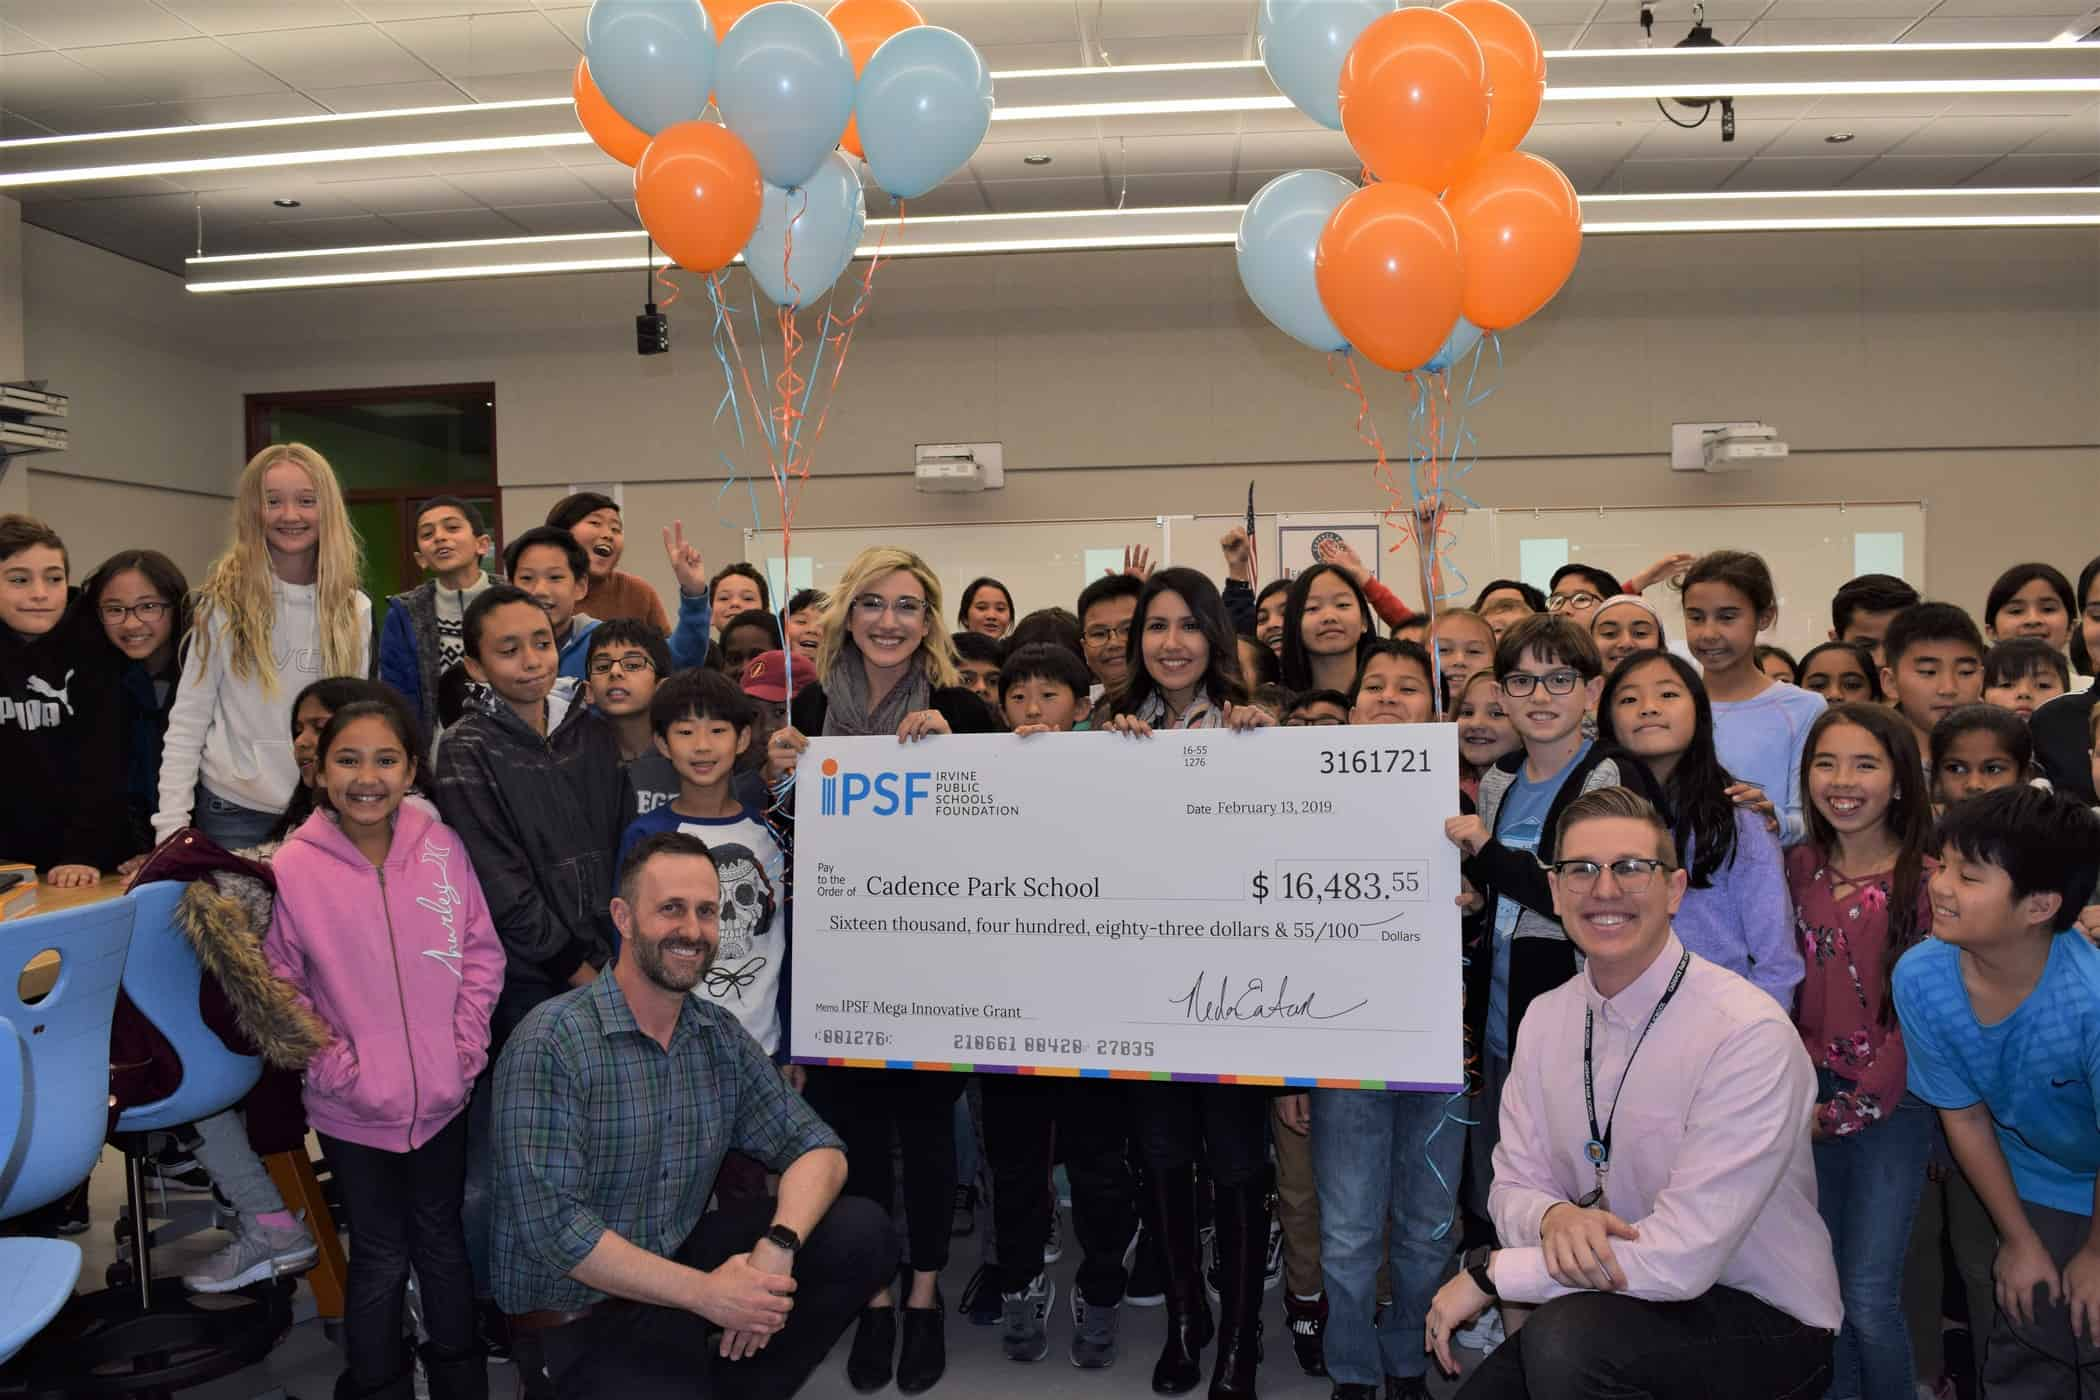 IPSF AWARDS $200,000 IN INNOVATIVE GRANTS